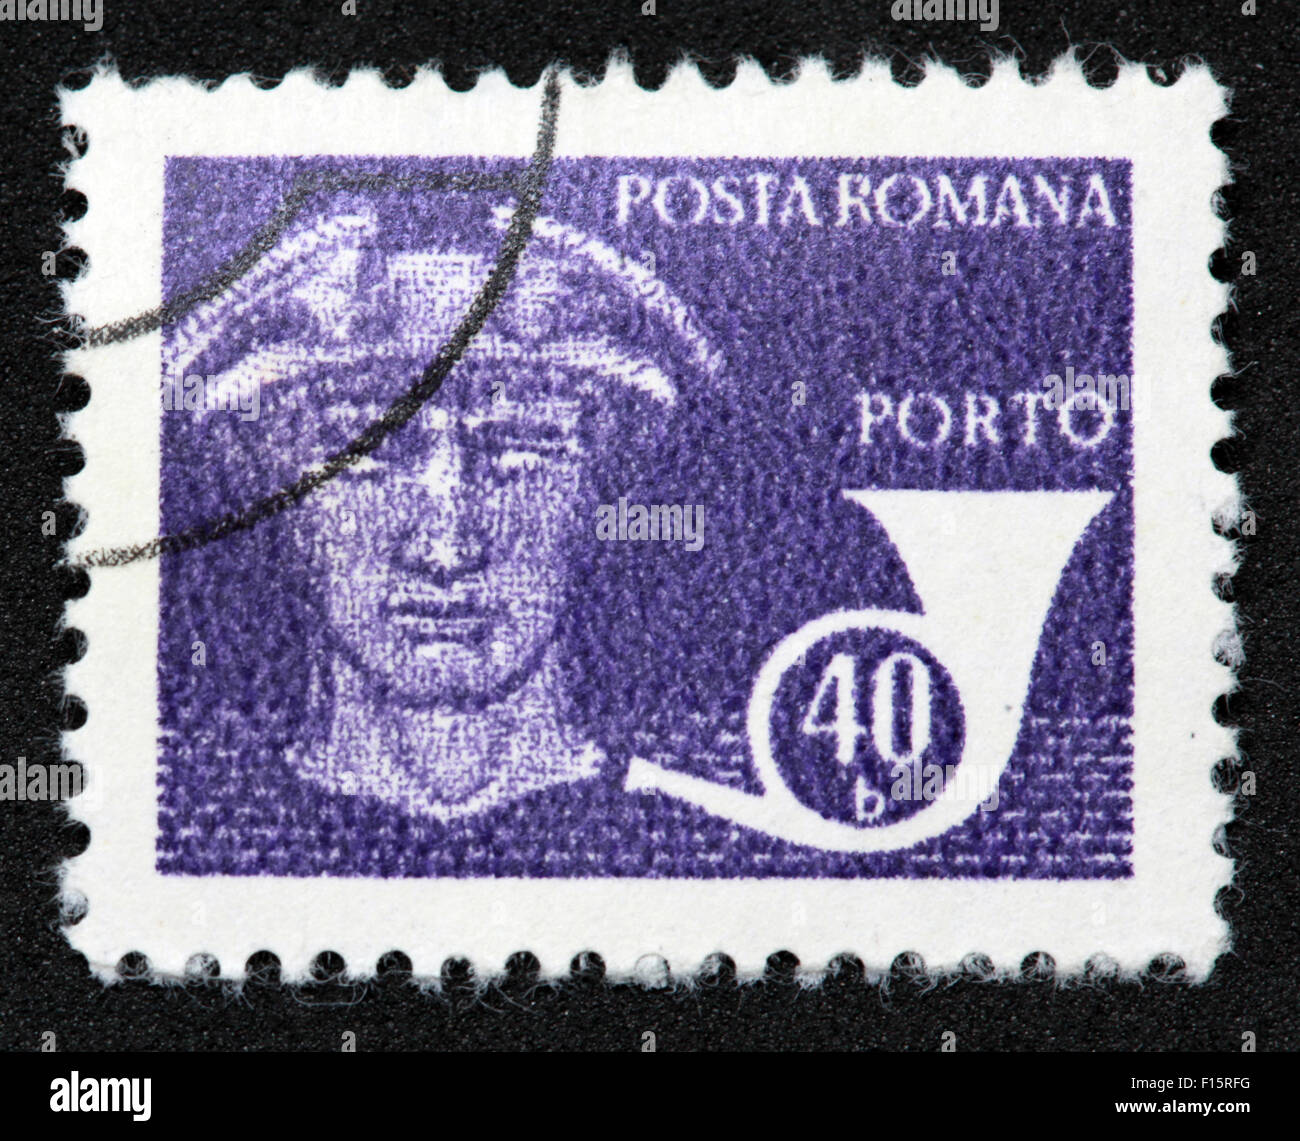 International Post,star,Used and Postmarked,Used,and,postmarked,perforated,stamp,Used,and,postmarked,Stamp,post,posting,mail,hobby,perforation,mark,postage,stamp,print,stamp,cancelled,stamp,payment,correspondence,postman,collection,collector,phila,USSR,Soviet,Bloc,Block,East,Eastern,Europe,Romanian,Gotonysmith,post,posting,mail,hobby,perforation,mark,postage,stamp,print,stamp,cancelled,canceled,stamp,payment,correspondence,postman,collection,collector,philately,philatelist,letter,price,history,retro,Australian,Vintage,delivery,date,relationship,communication,Oz,Australia,DownUnder,classic rare unique Austrailian financial,investment,invest,value,British,empire,nation,canceled,printed on black background,close-up,closeup,close,up,sent,send,philately,mailing,shipping,postoffice,office,isolated,circa,special,colour,color,postmarked,marked,airmail,aged,antique,retro,cutting,historic,old,stamps,collection,stamp collection,album,Timbre,Sello,Stempel,Selo,Buy Pictures of,Buy Images Of,Down Under,Black background